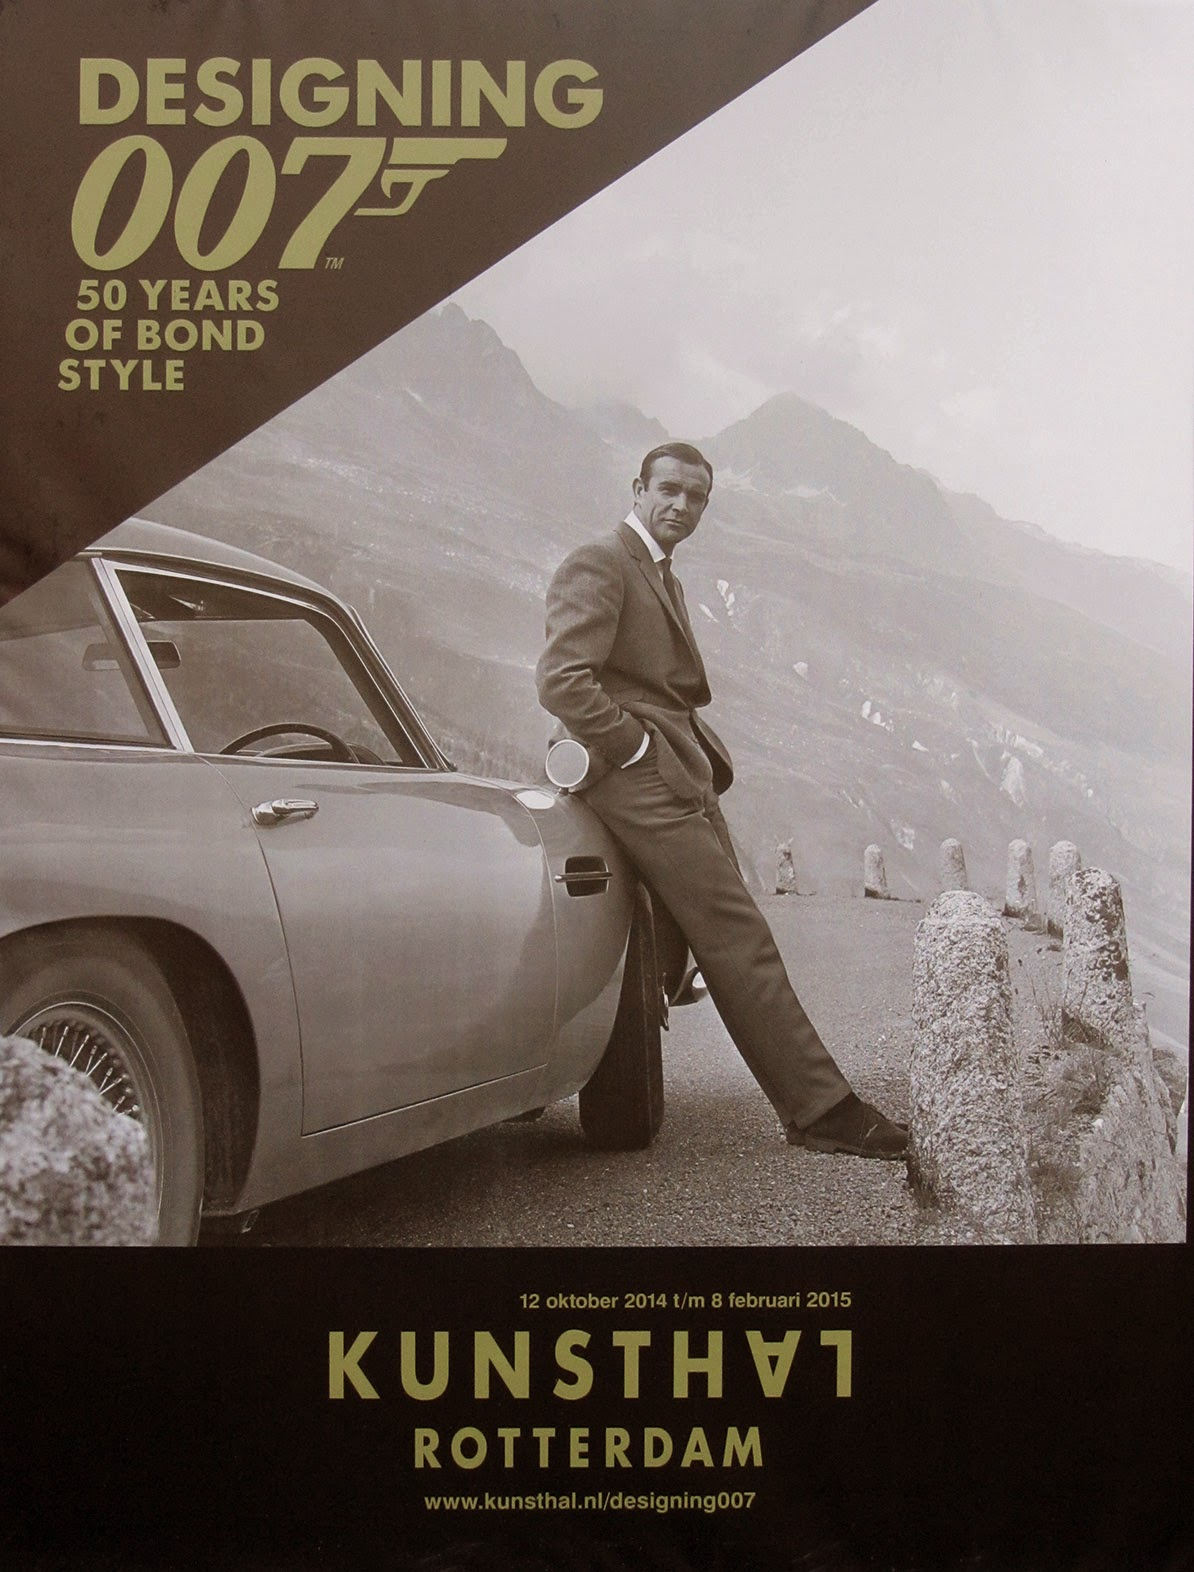 poster Designing 007, 50 years of Bond style